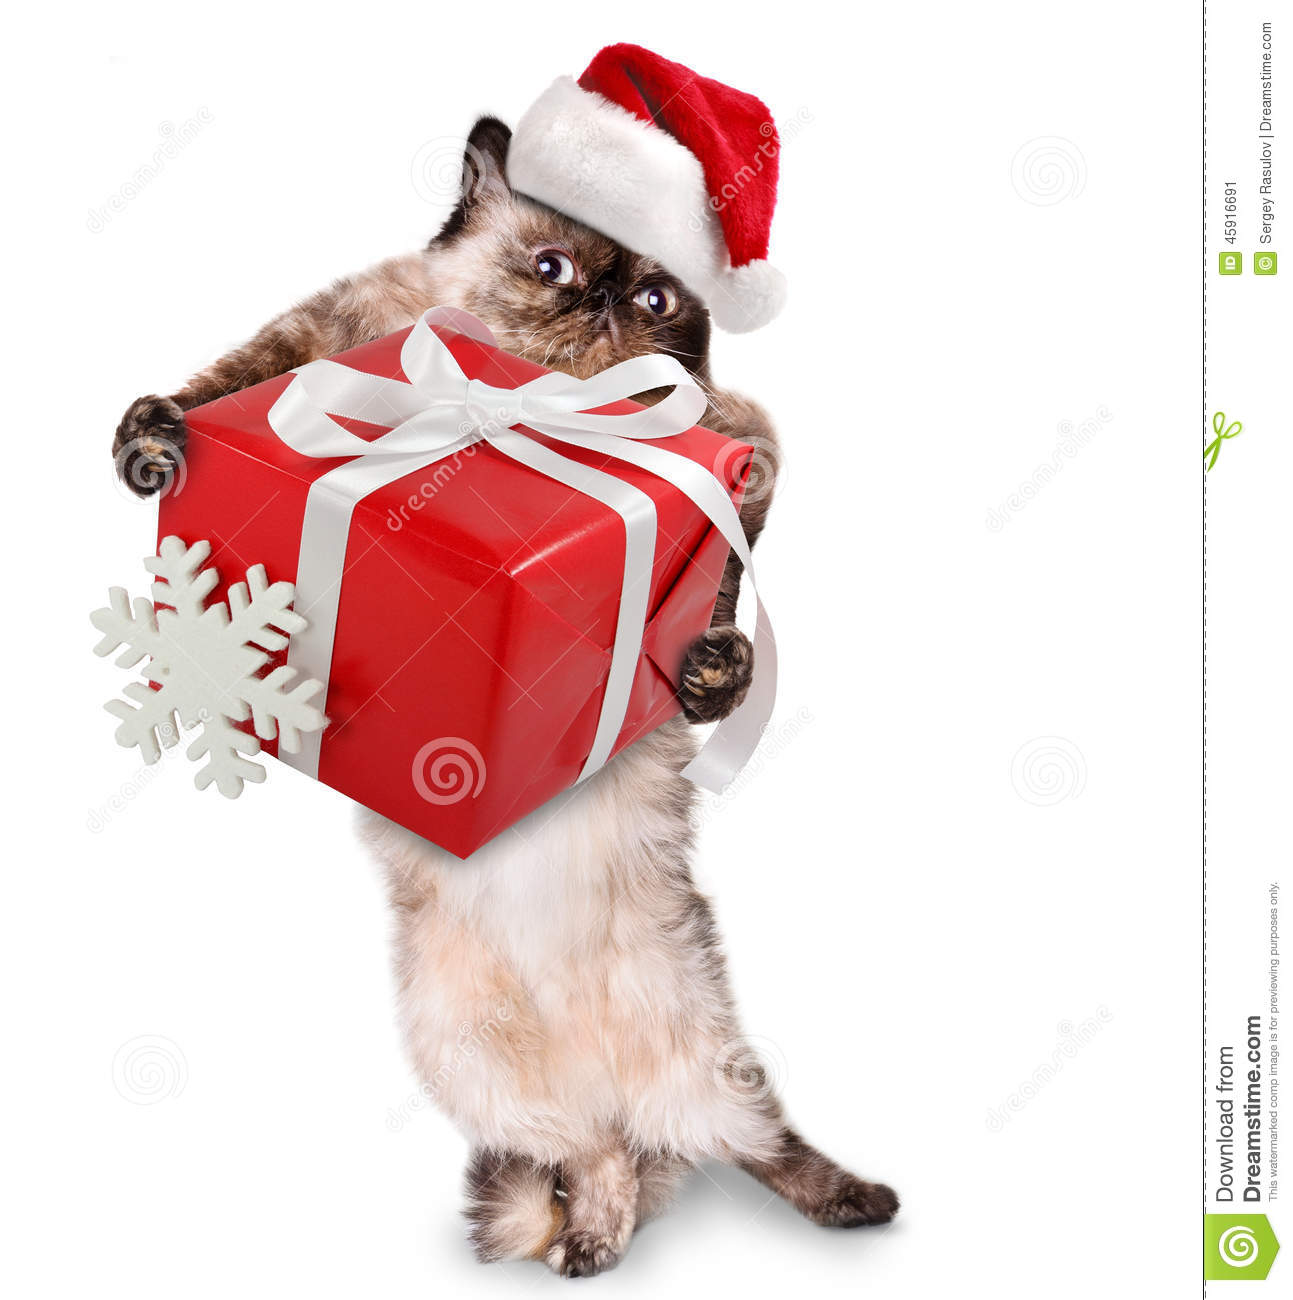 Cat in red Christmas hats with gift.